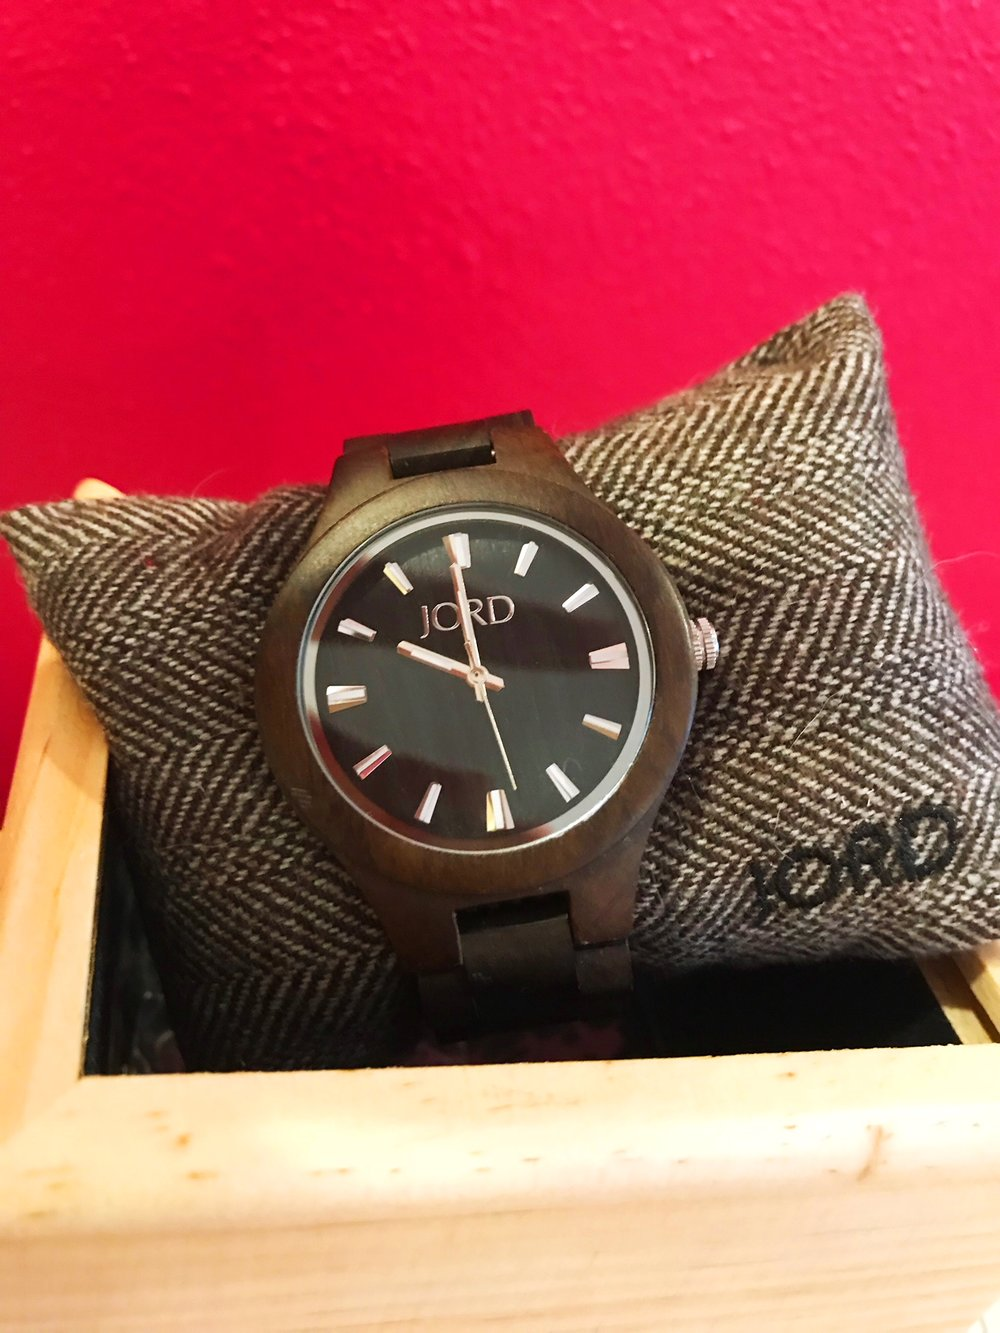 JORD Fieldcrest watch in Dark Sandalwood